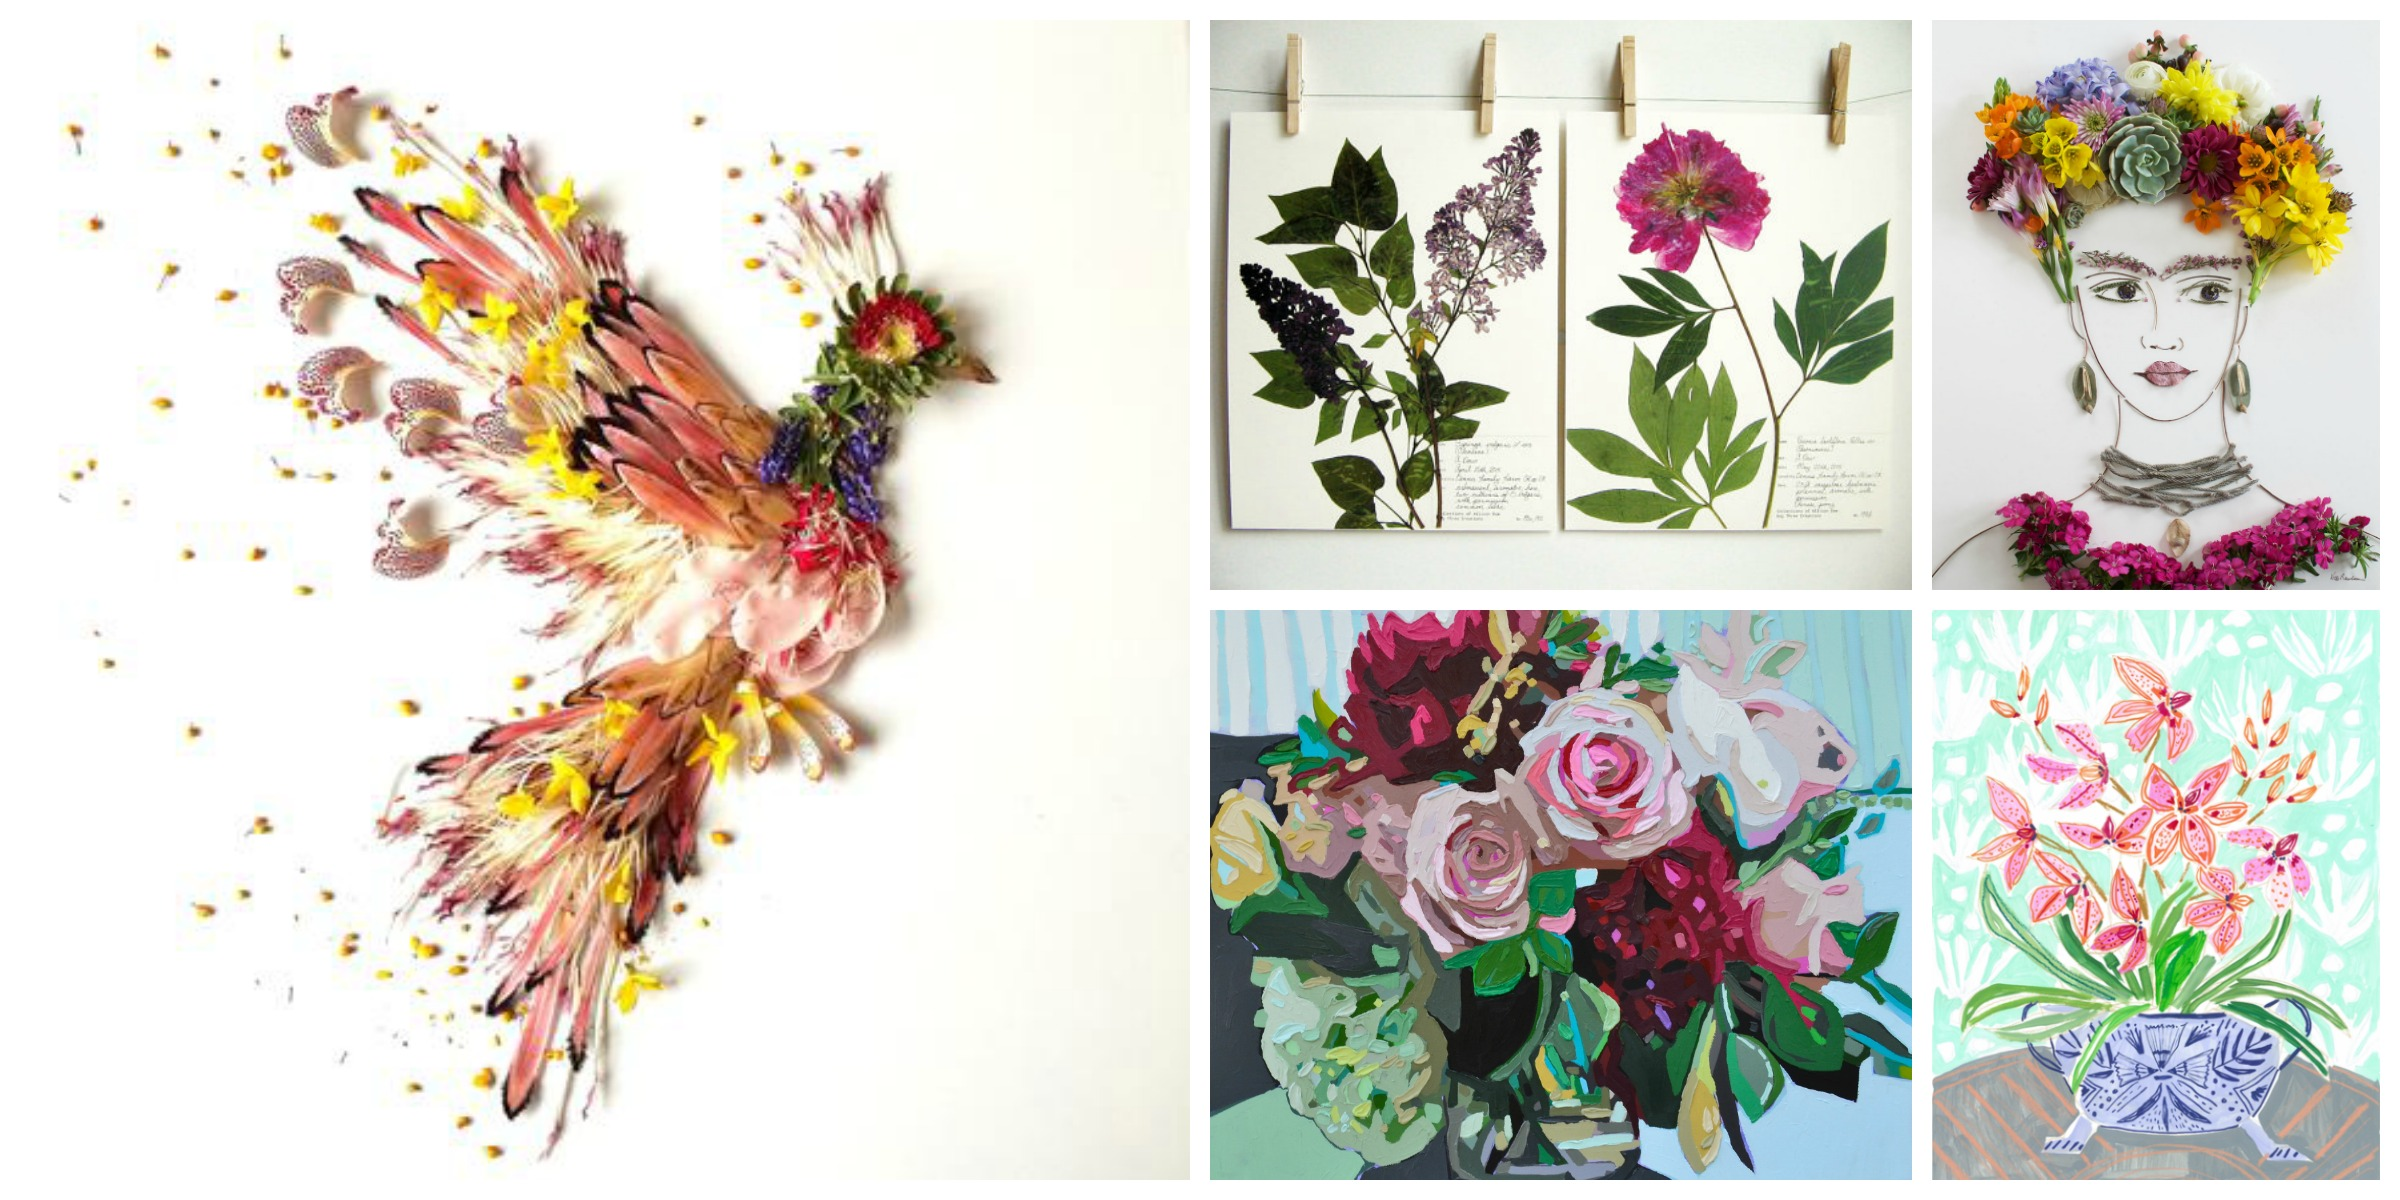 Firebird Print by  Flora Forager // Lilac and Peony Print by  Day Three Creations // Spring Frida Flower Face Print by  Sister Golden // Branches Print by  Kate Mullin // Flowers for Laura Print by  Lulie Wallace